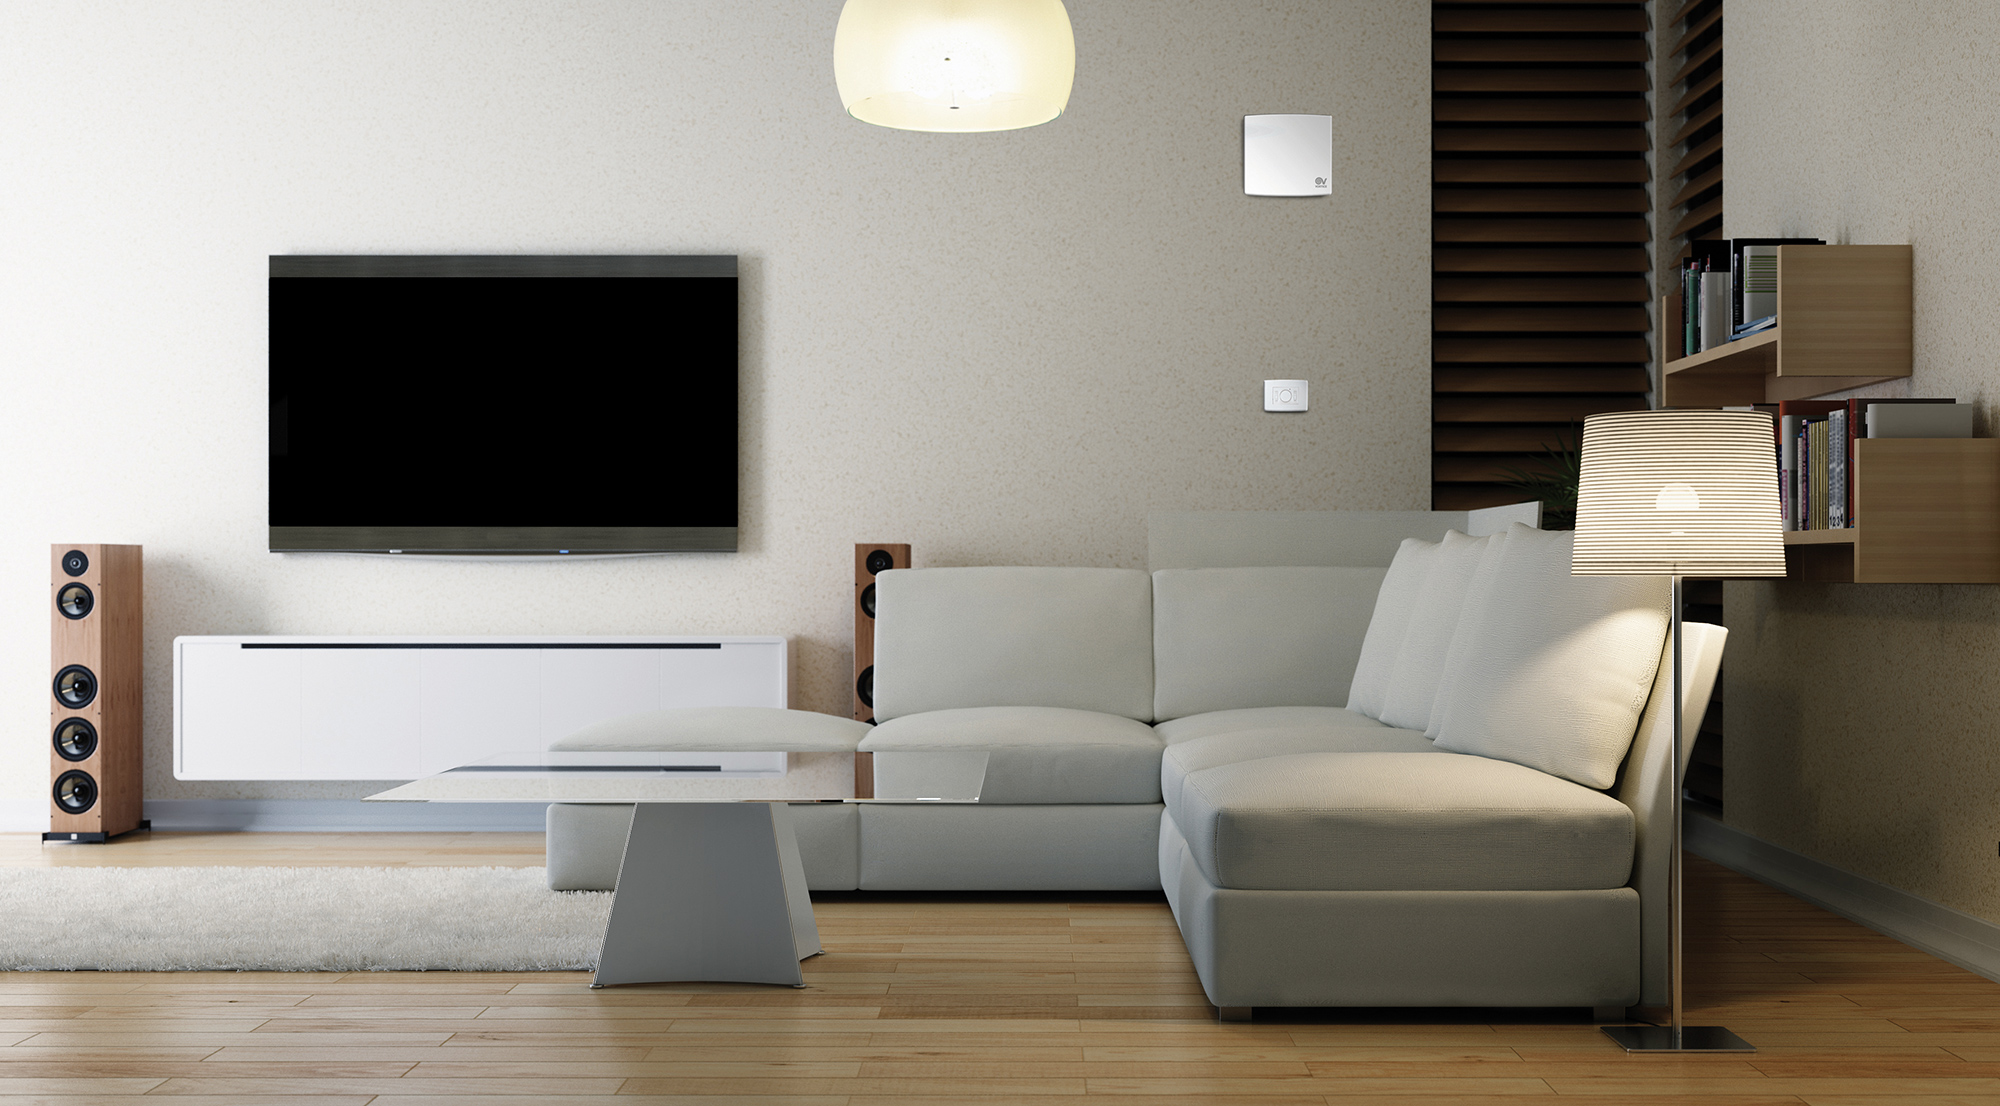 vmc double flux tr s basse consommation et silencieuse am liorer chez moi. Black Bedroom Furniture Sets. Home Design Ideas